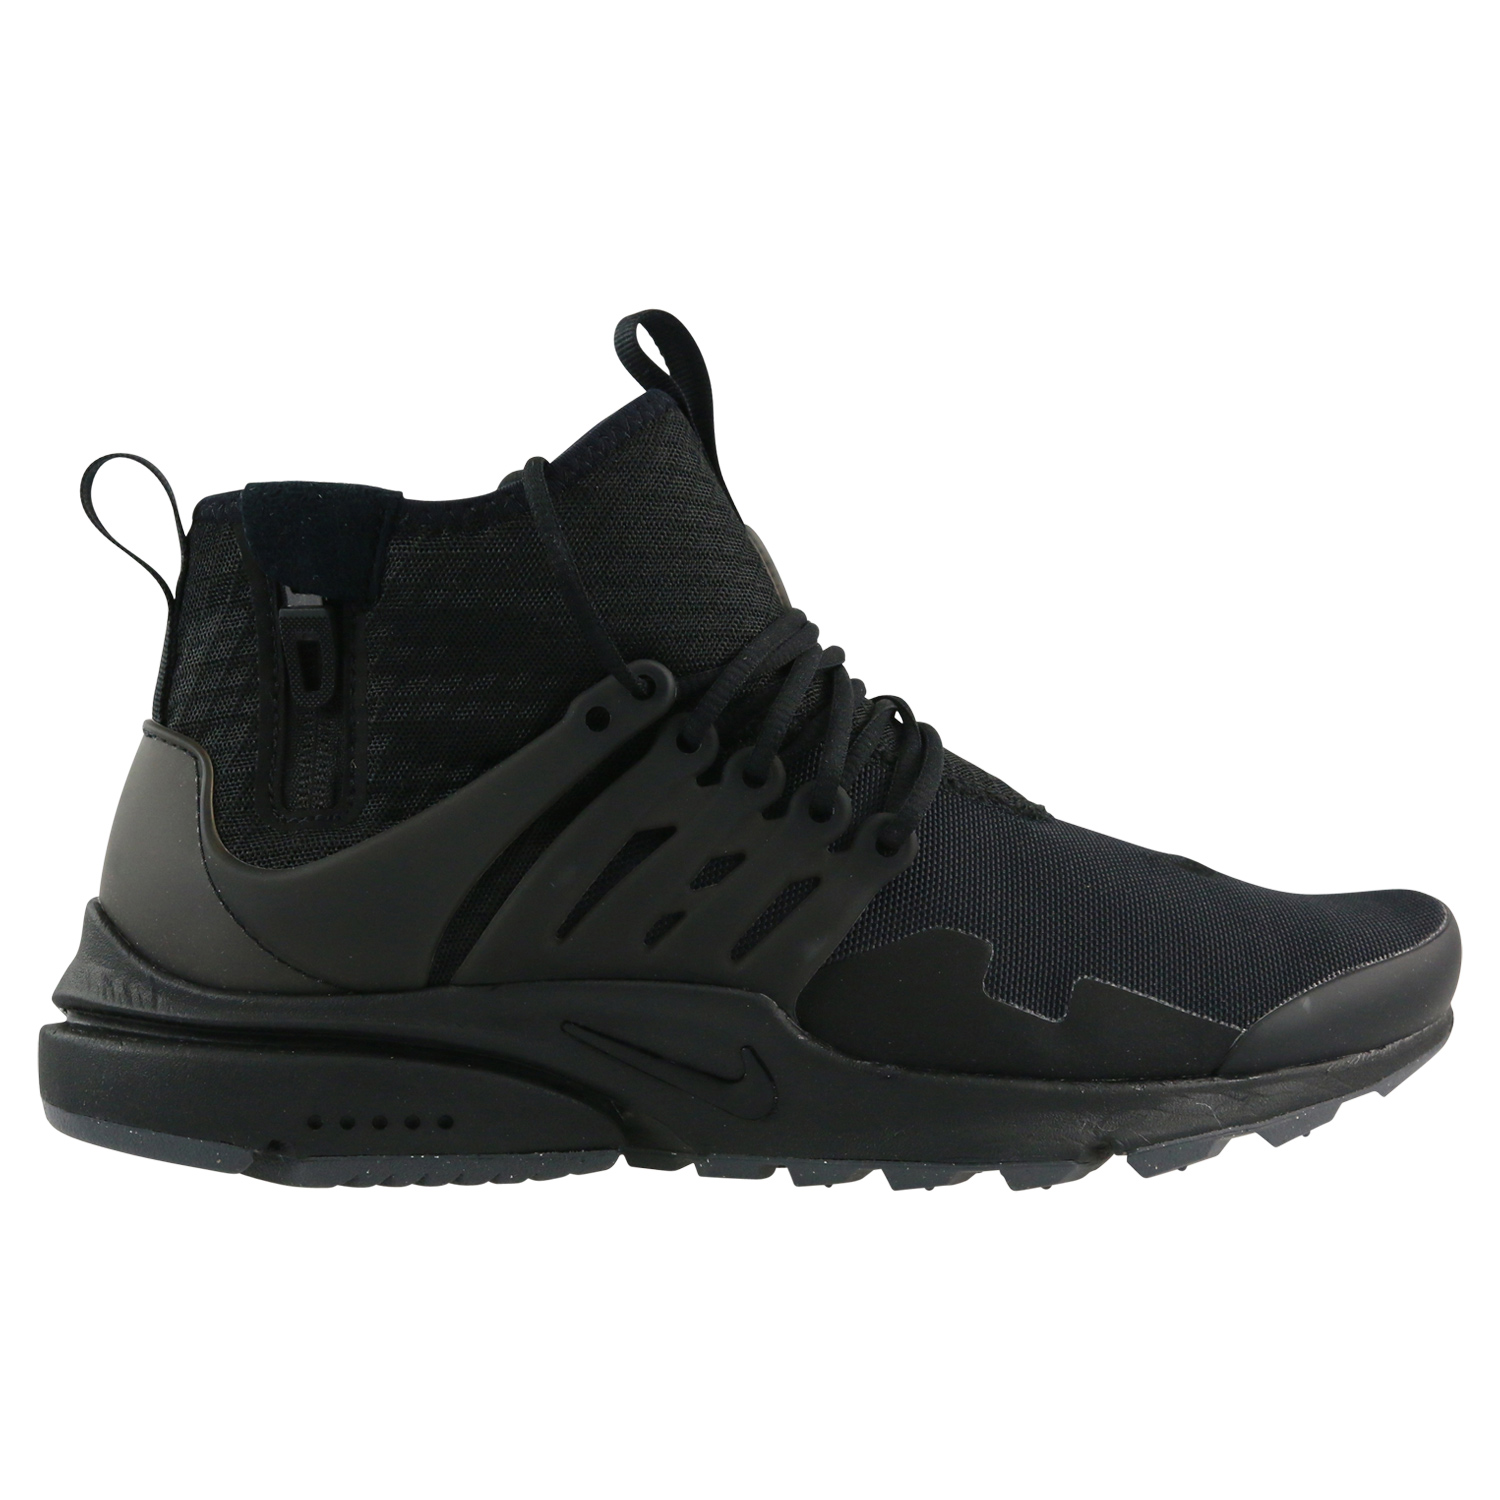 nike air presto utility mid winter schuhe sneaker herren 859524 ebay. Black Bedroom Furniture Sets. Home Design Ideas